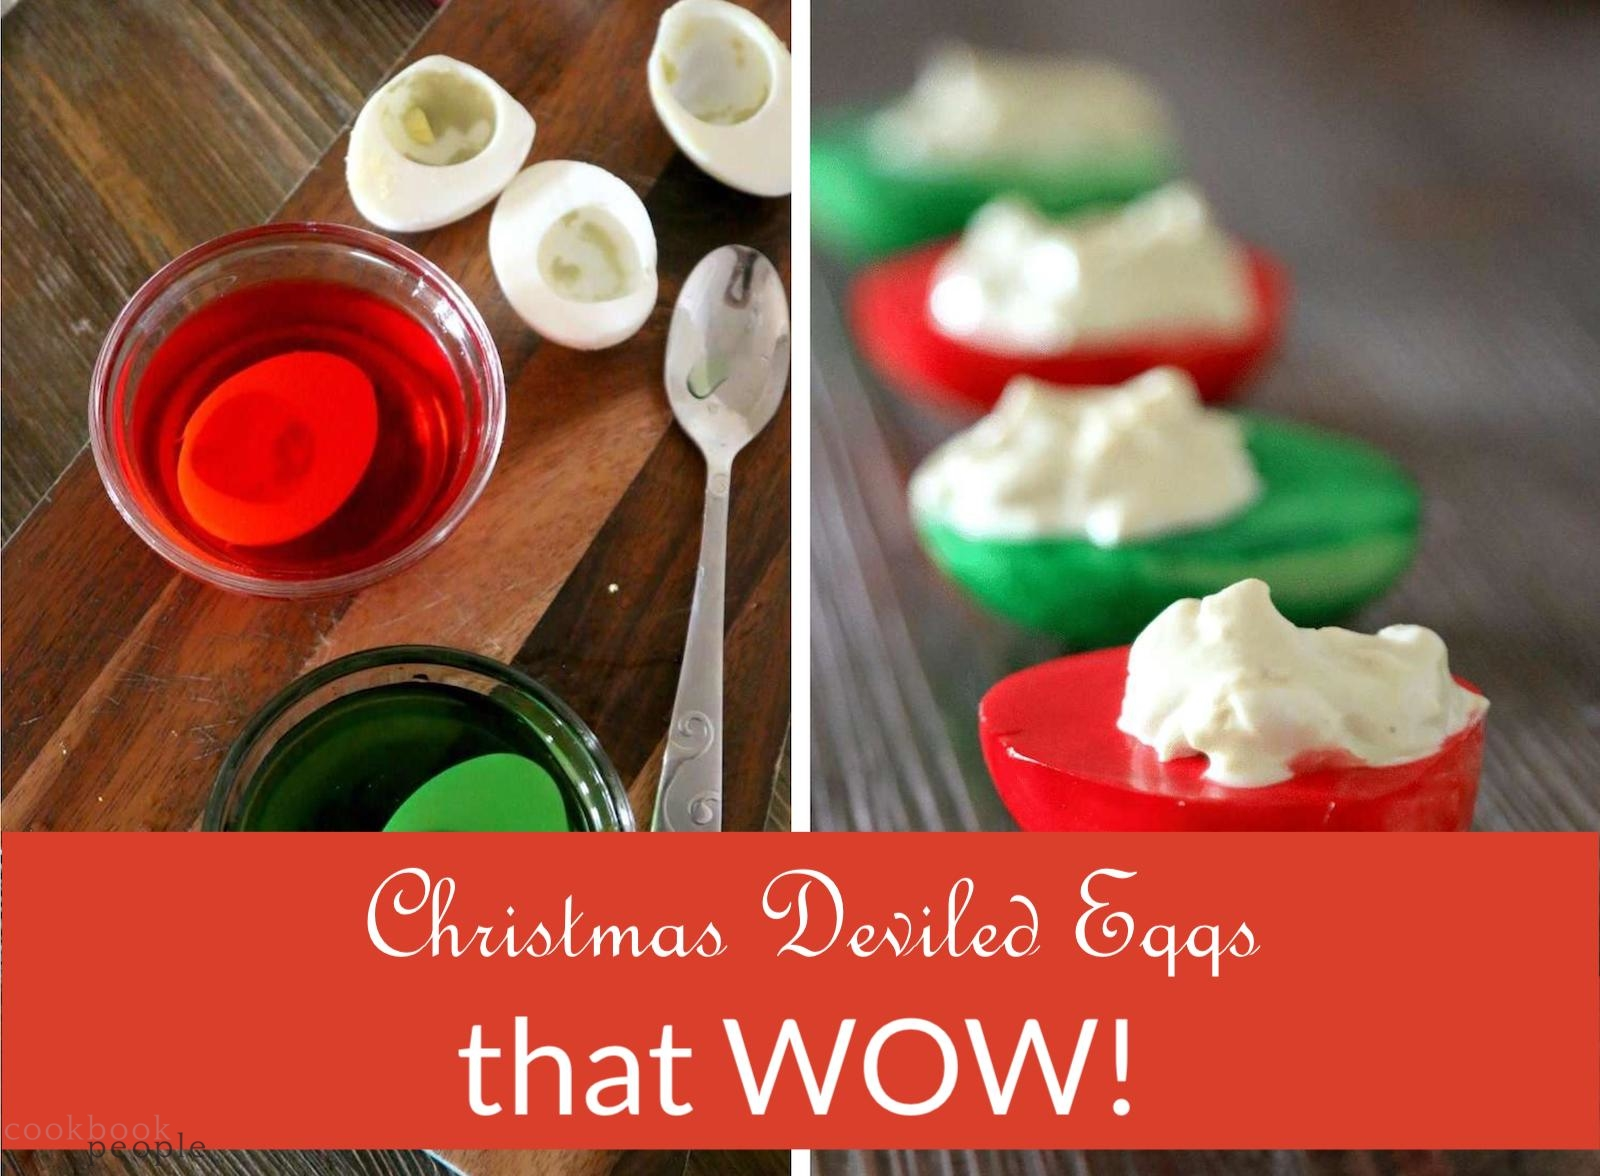 Preparing Xmas Deviled Eggs